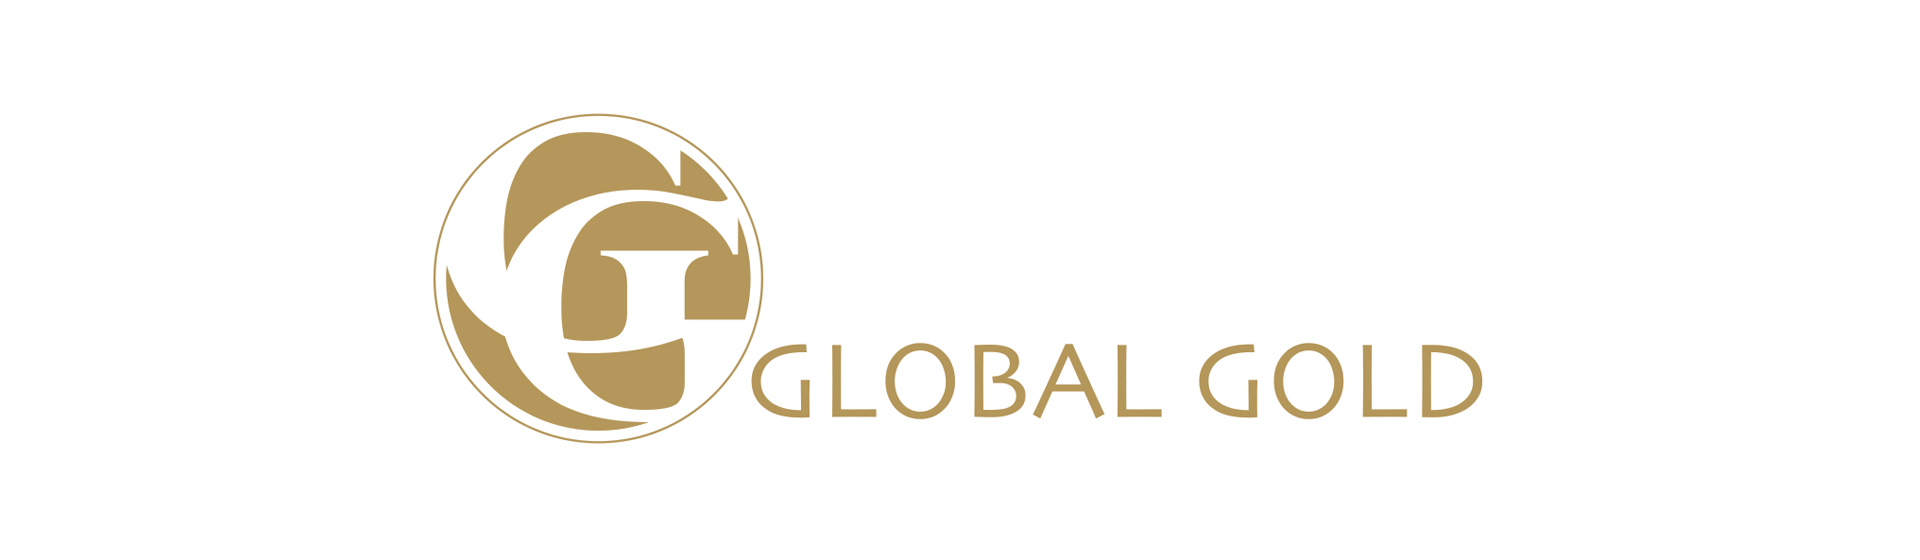 Global Gold Logo Design